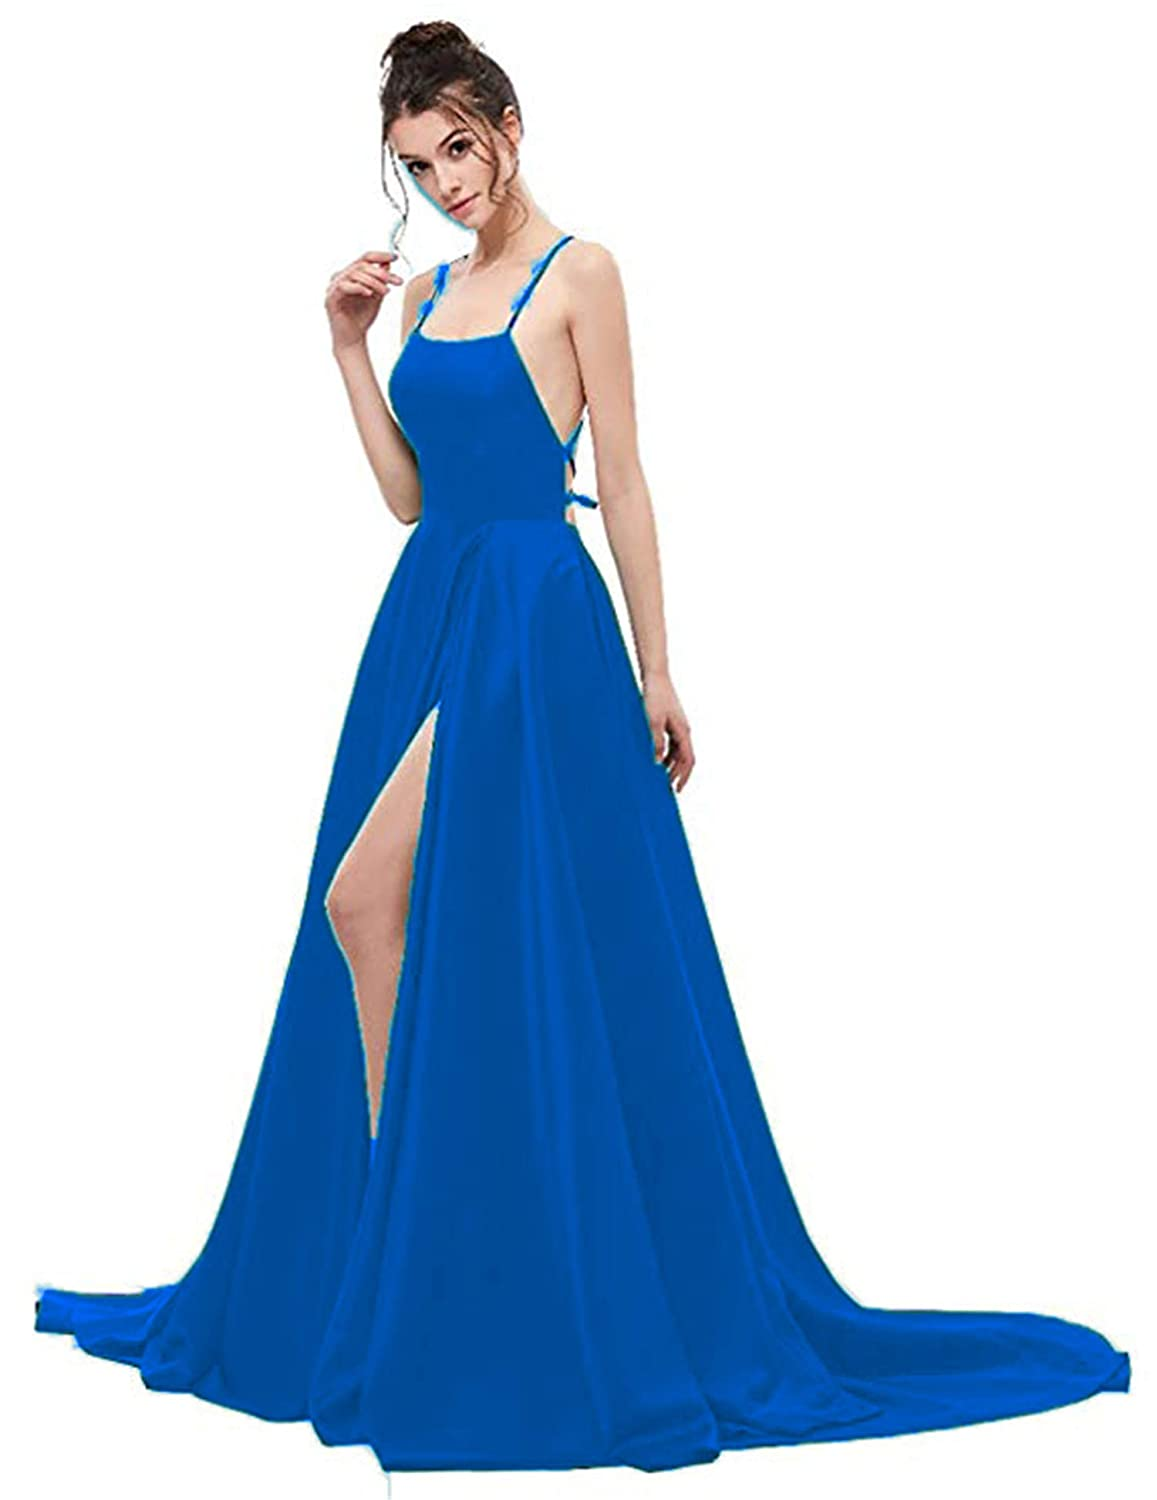 bluee Ruiyuhong Women's Satin Sexy Split Prom Dresses Backless Prom Evening Gowns